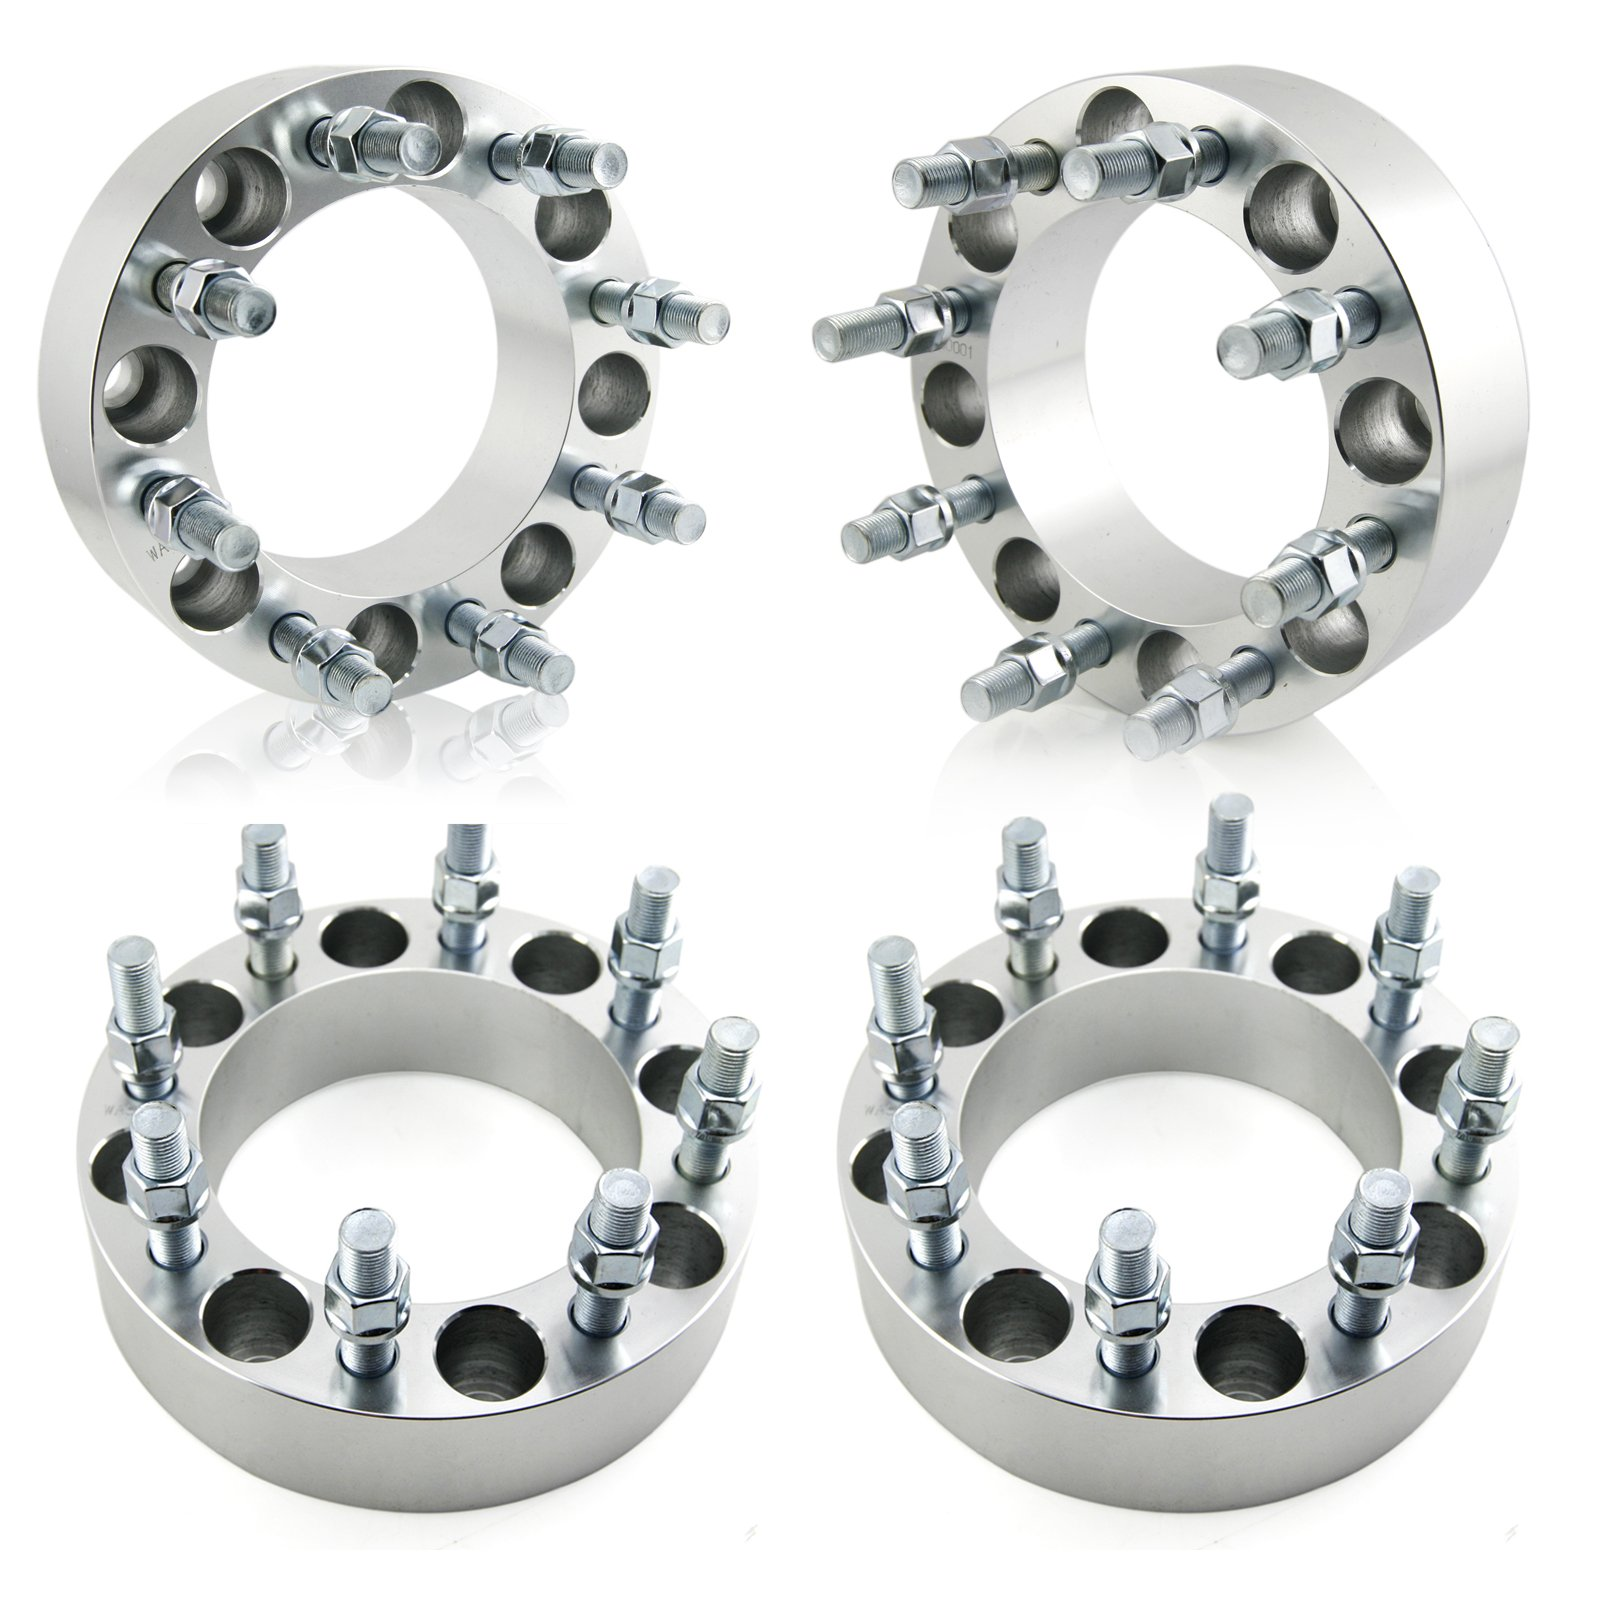 OrionMotorTech 8x6.5 Wheel Spacers 2'' with 9/16-18 Studs for 1994-2011 Dodge Ram 2500 3500, 1988-1998 Ford F-250 F-350, 4 Wheel Adapters 8x165.1